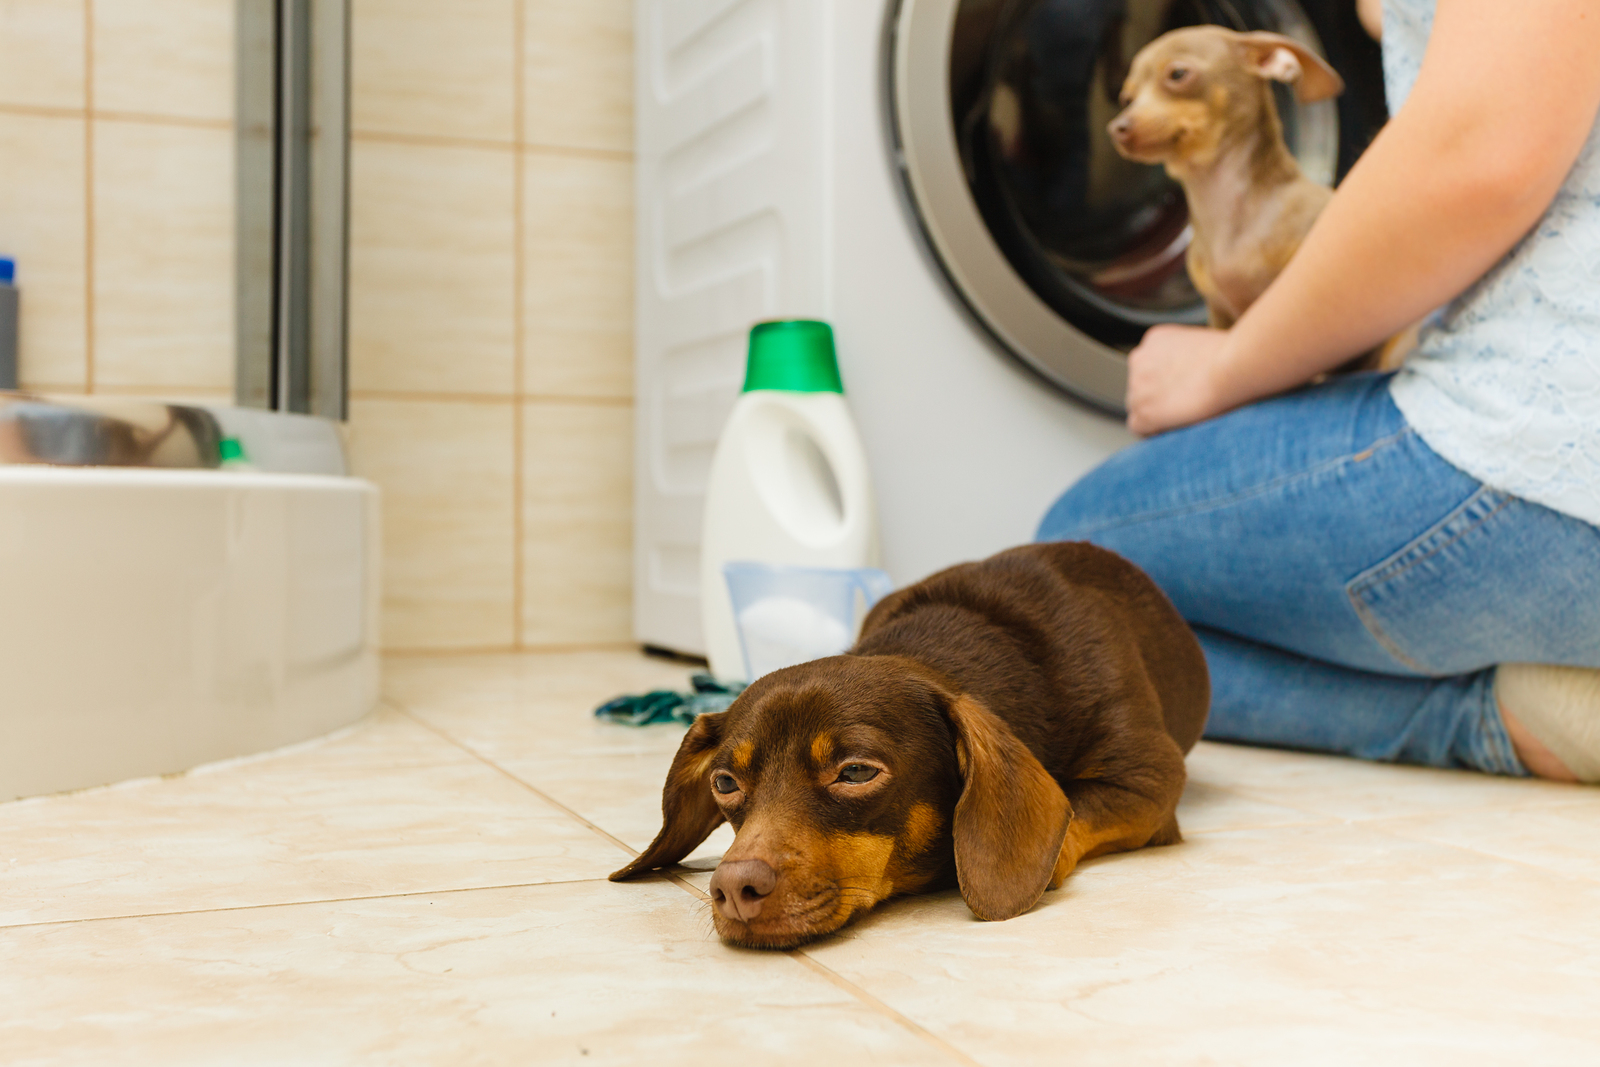 5 Common Ways Dogs Are Accidentally Poisoned